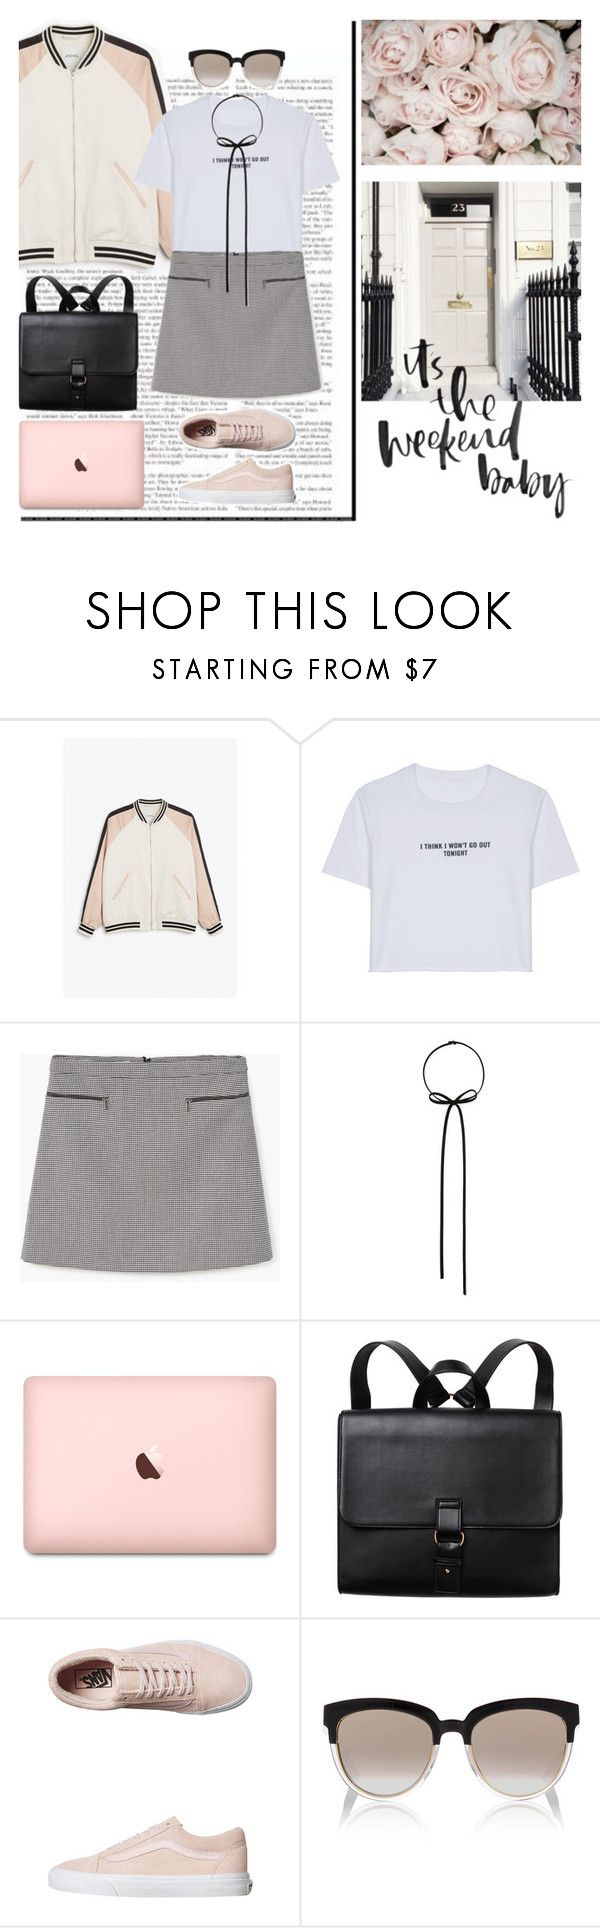 """""""real life is stranger"""" by emyemoemu ❤ liked on Polyvore featuring Monki, WithChic, MANGO, Forever 21, Vans and Christian Dior"""